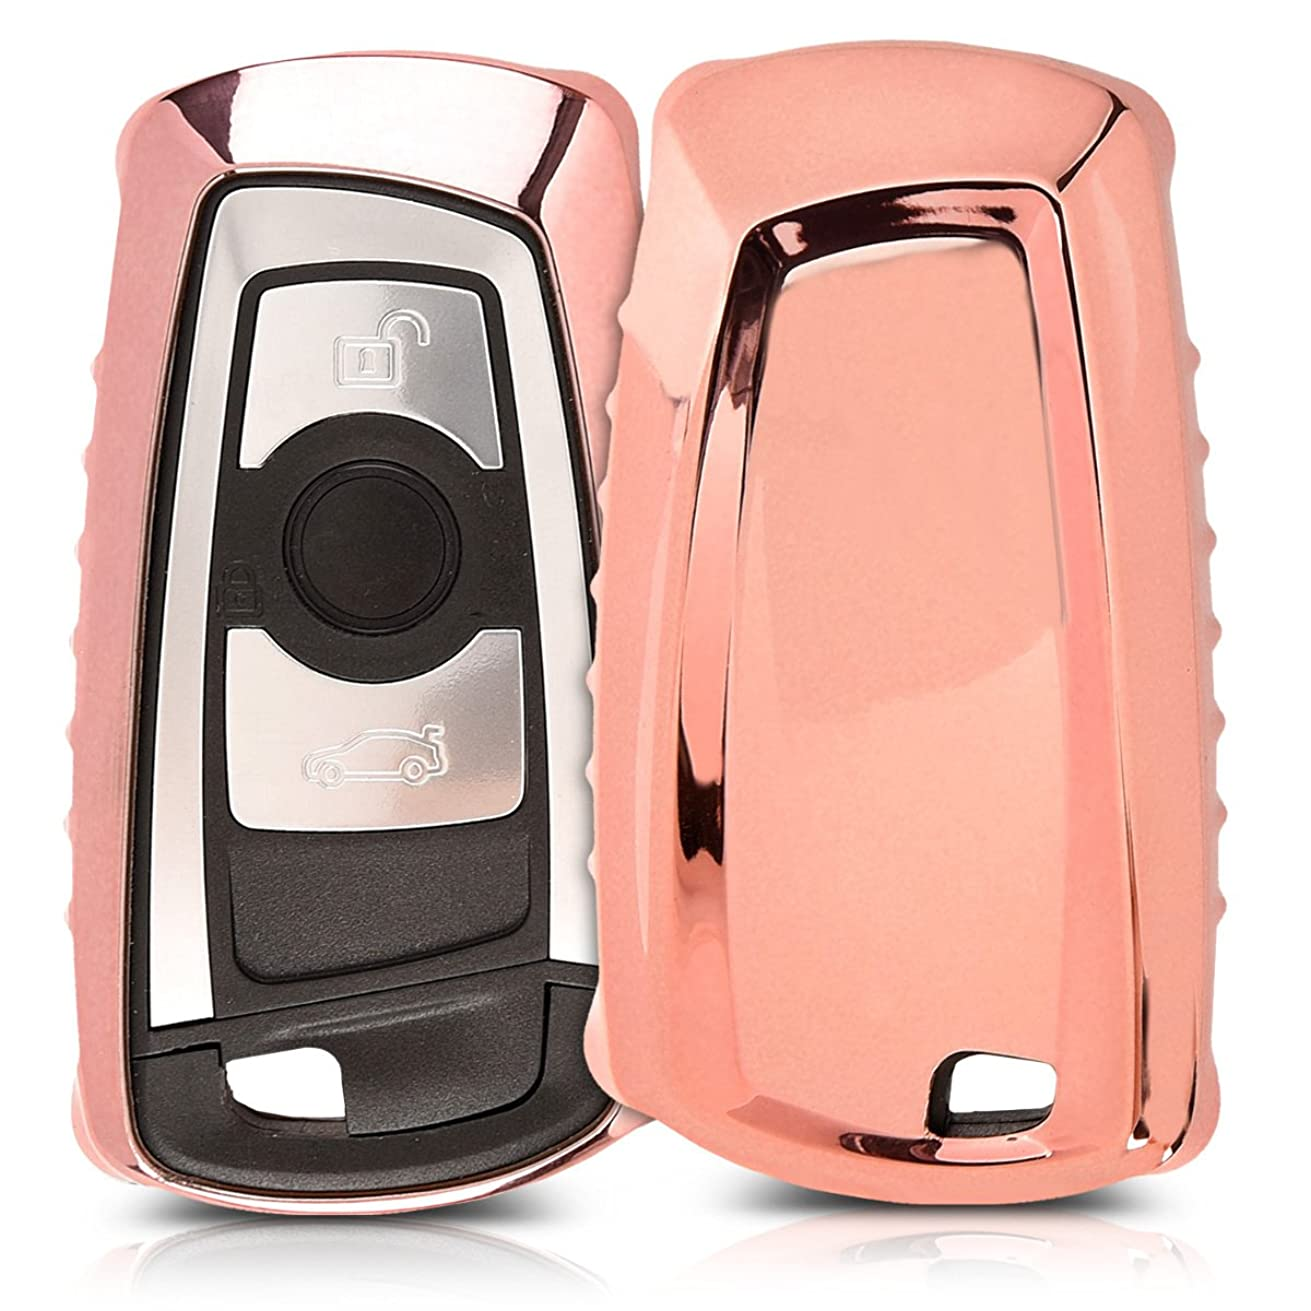 kwmobile Car Key Cover for BMW - Soft TPU Silicone Protective Key Fob Cover for BMW 3 Button Remote Control Car Key (only Keyless Go) - Rose Gold High Gloss